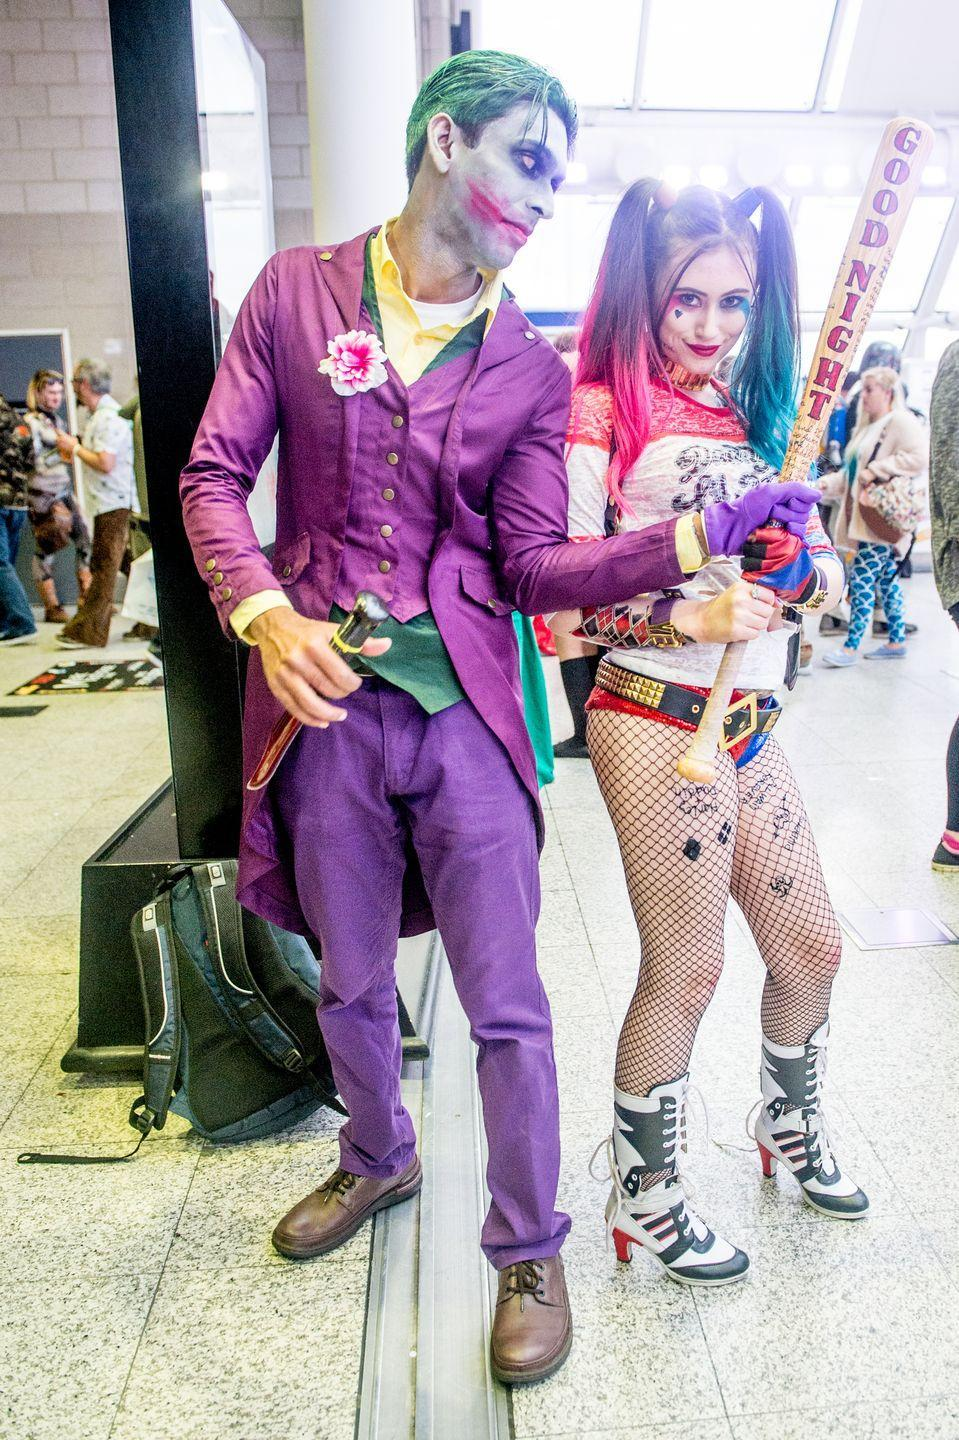 """<p>Let chaos reign by dressing up as Gotham City's most deranged couple — if you have a few key pieces, like purple jeans and sequin hot pants in your closet, this can be an easy last-minute costume to throw together.</p><p><a class=""""link rapid-noclick-resp"""" href=""""https://www.amazon.com/Rubies-Costume-Womens-Suicide-Deluxe/dp/B01COL8S1A?tag=syn-yahoo-20&ascsubtag=%5Bartid%7C10070.g.28669645%5Bsrc%7Cyahoo-us"""" rel=""""nofollow noopener"""" target=""""_blank"""" data-ylk=""""slk:SHOP WOMEN'S COSTUME"""">SHOP WOMEN'S COSTUME</a></p><p><a class=""""link rapid-noclick-resp"""" href=""""https://www.amazon.com/Batman-Knight-Deluxe-Costume-Childs/dp/B001ER6PUC?tag=syn-yahoo-20&ascsubtag=%5Bartid%7C10070.g.28669645%5Bsrc%7Cyahoo-us"""" rel=""""nofollow noopener"""" target=""""_blank"""" data-ylk=""""slk:SHOP MEN'S COSTUME"""">SHOP MEN'S COSTUME</a></p>"""